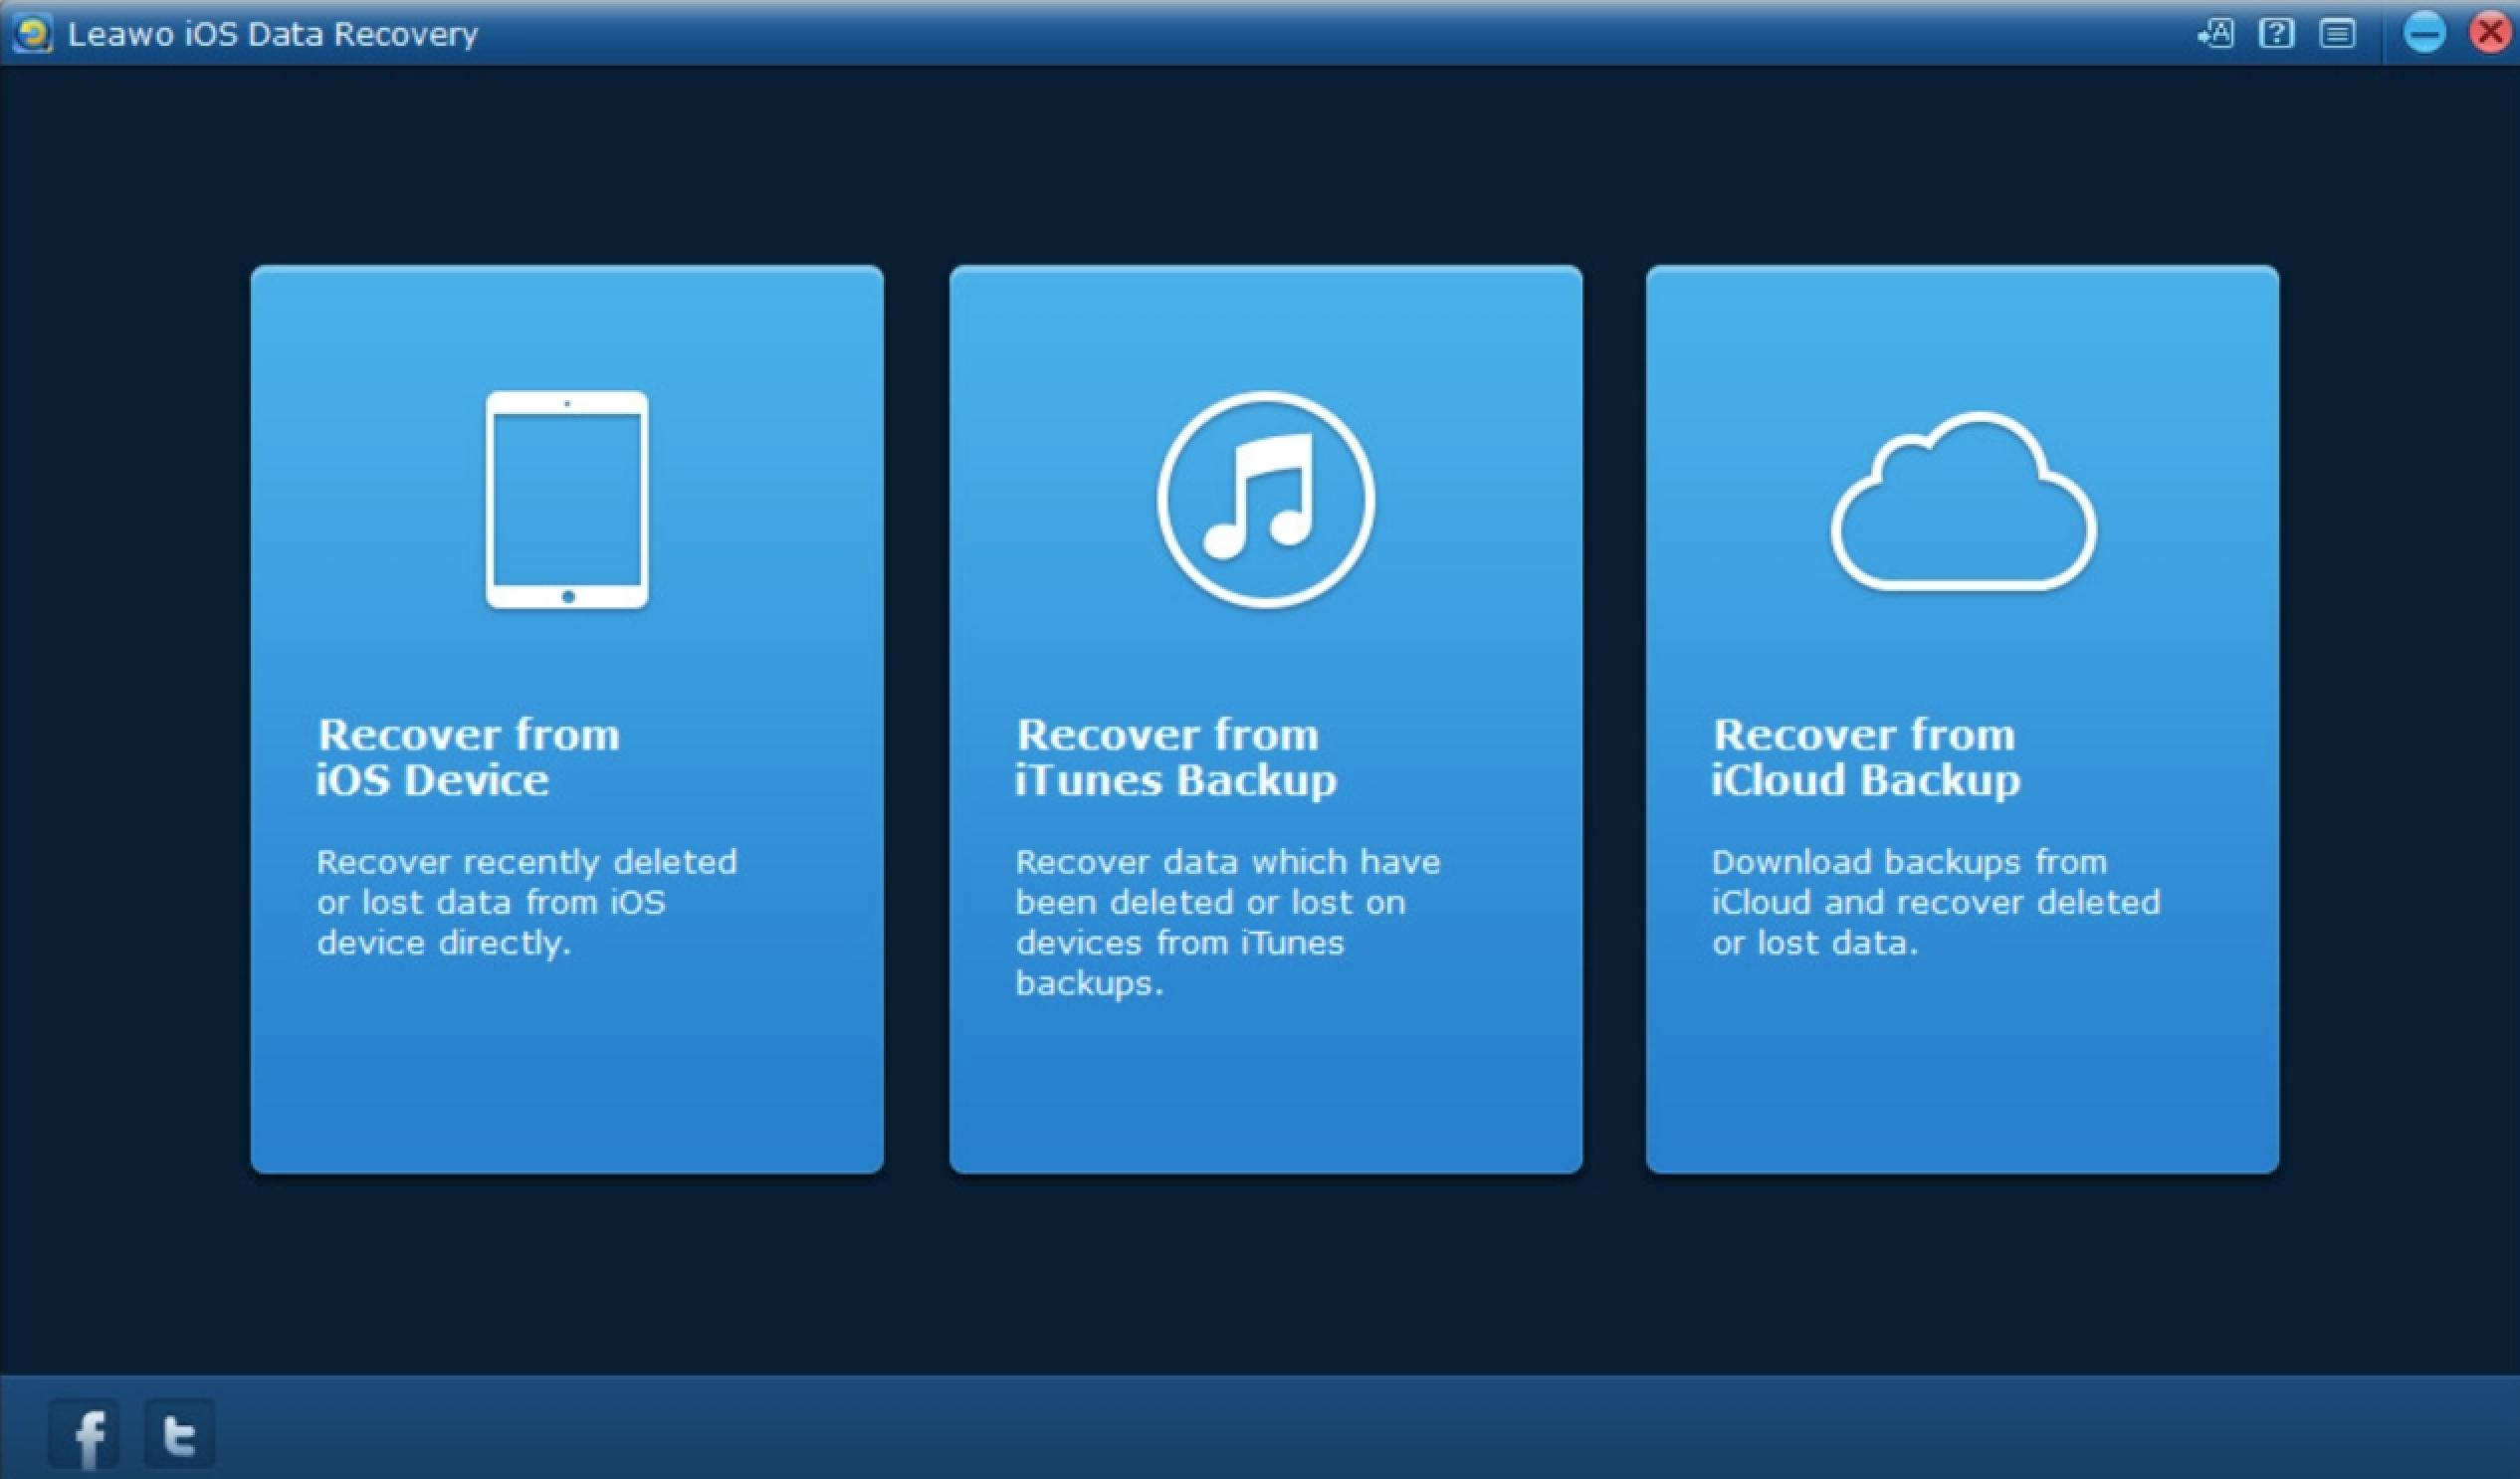 how-to-back-up-and-recover-with-Leawo-iOS-Data-Recovery 01